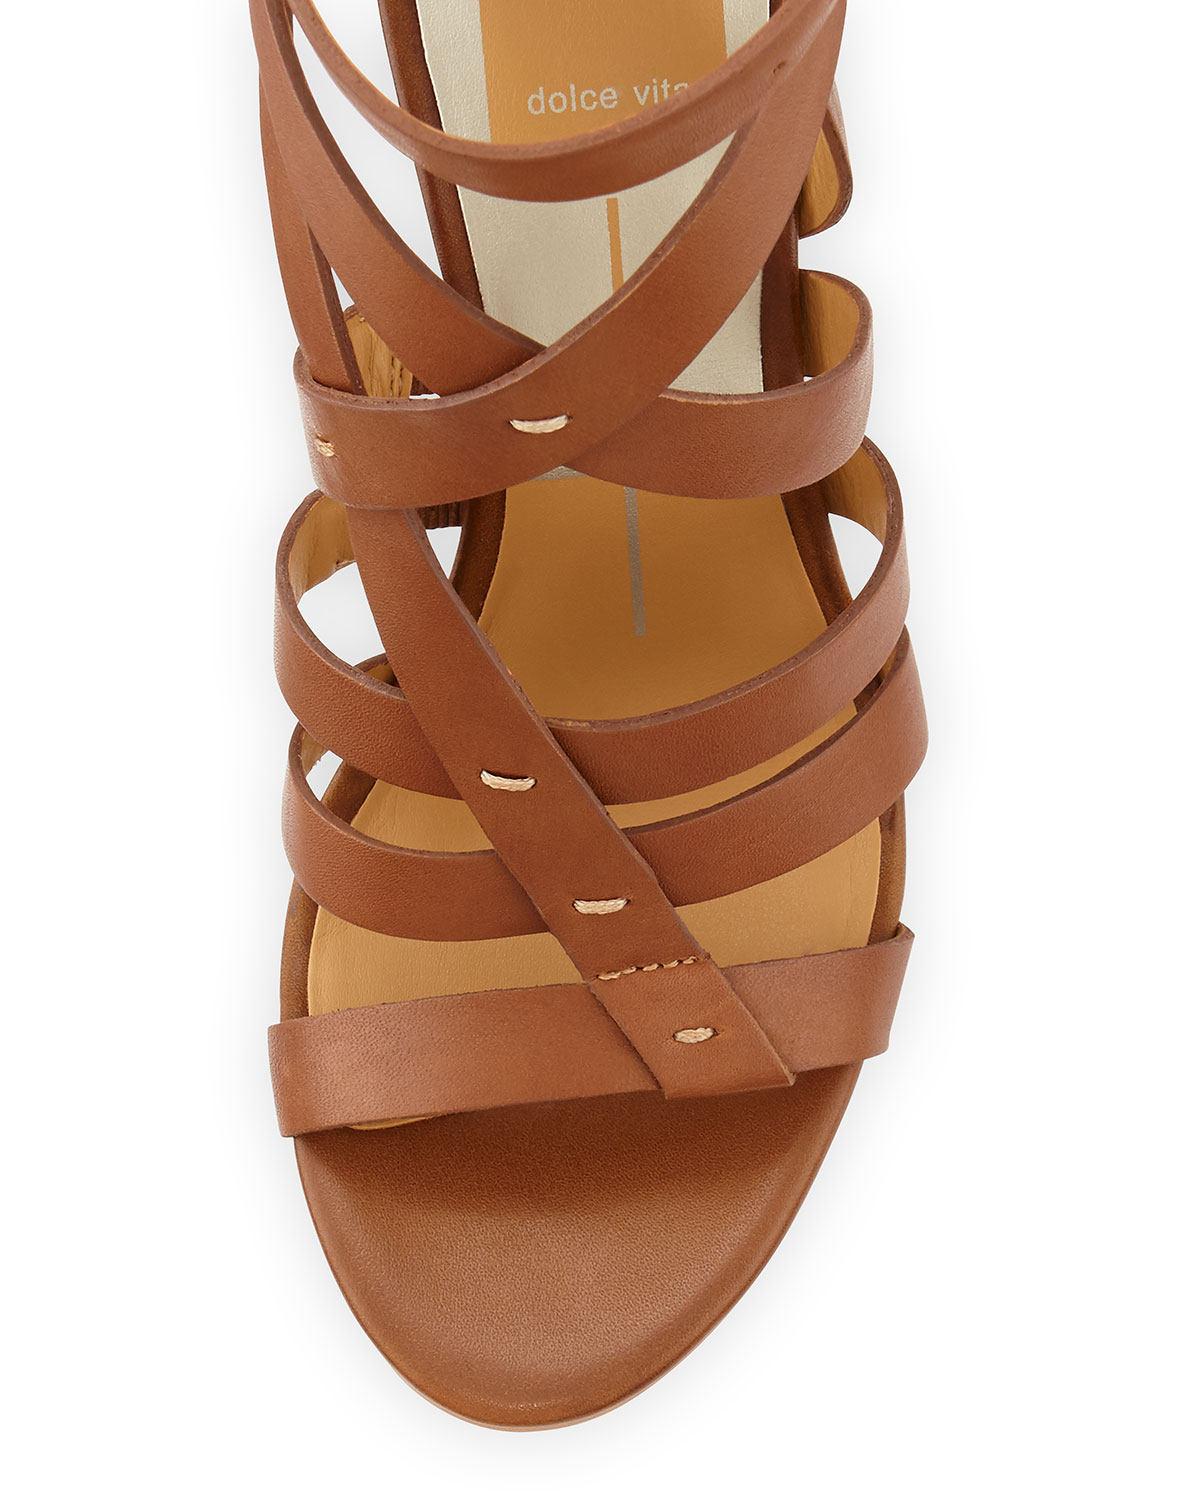 a751d0020b1 Lyst - Dolce Vita Nolin Strappy Leather Sandal in Brown